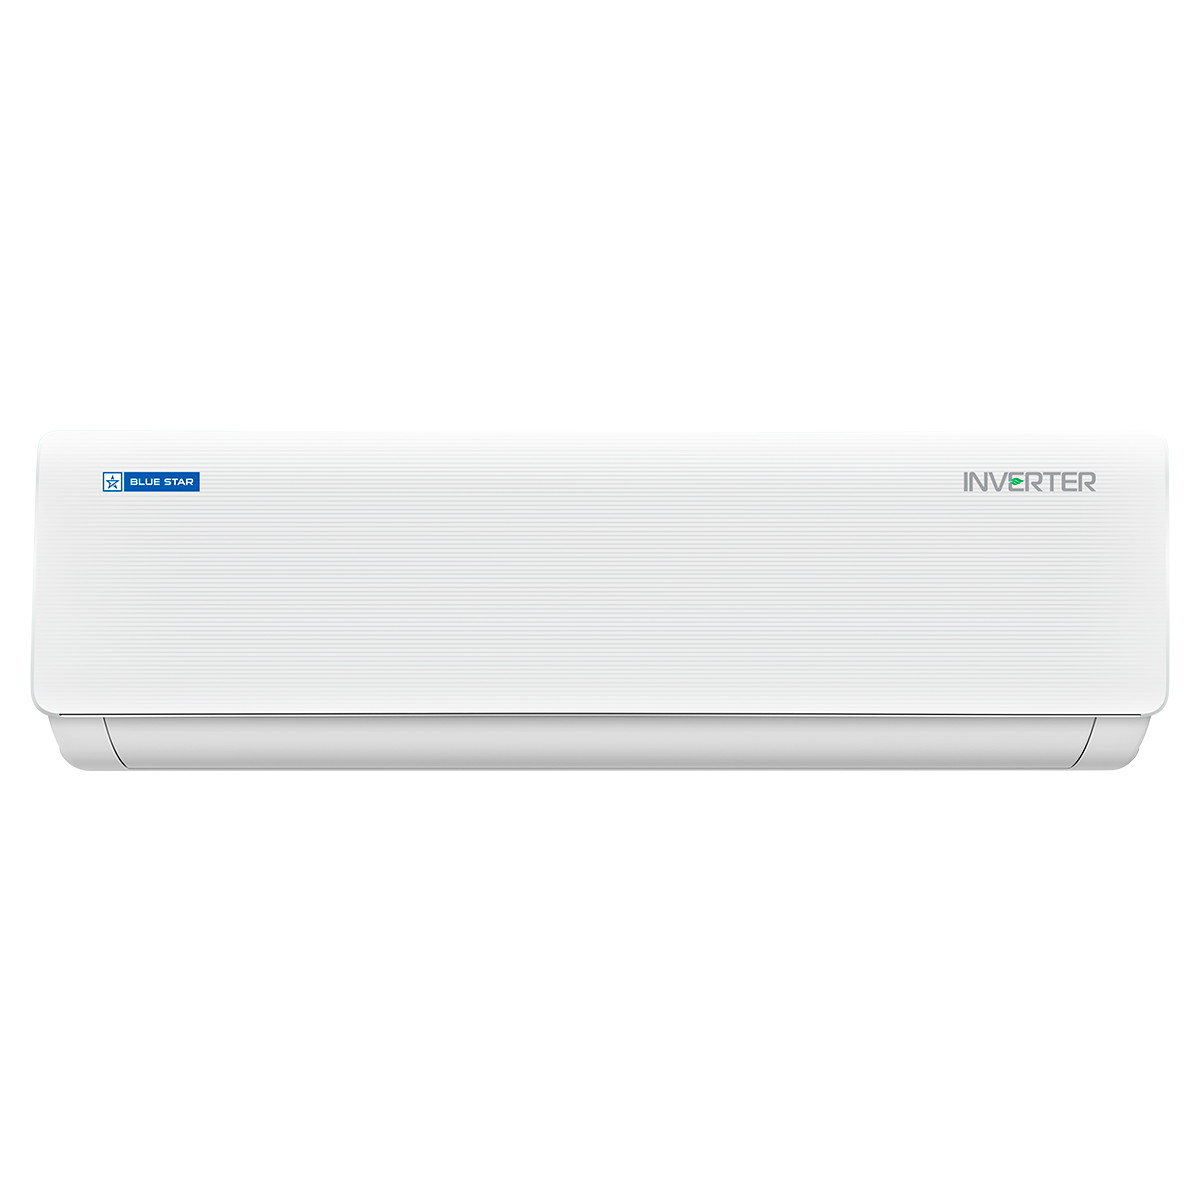 EATU | Inverter AC | 3 Star | 1.5 Ton